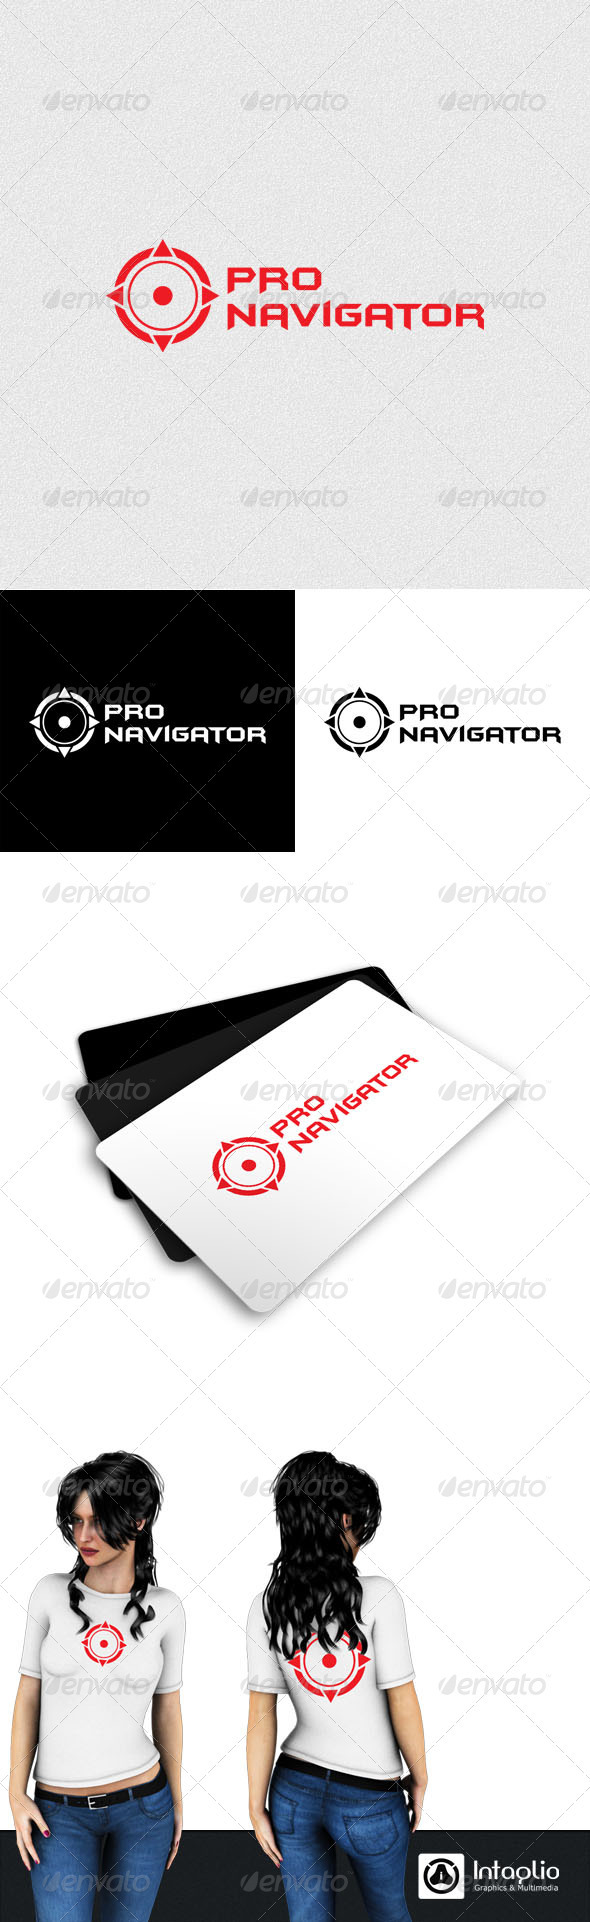 Navigation Logo - Vector Abstract